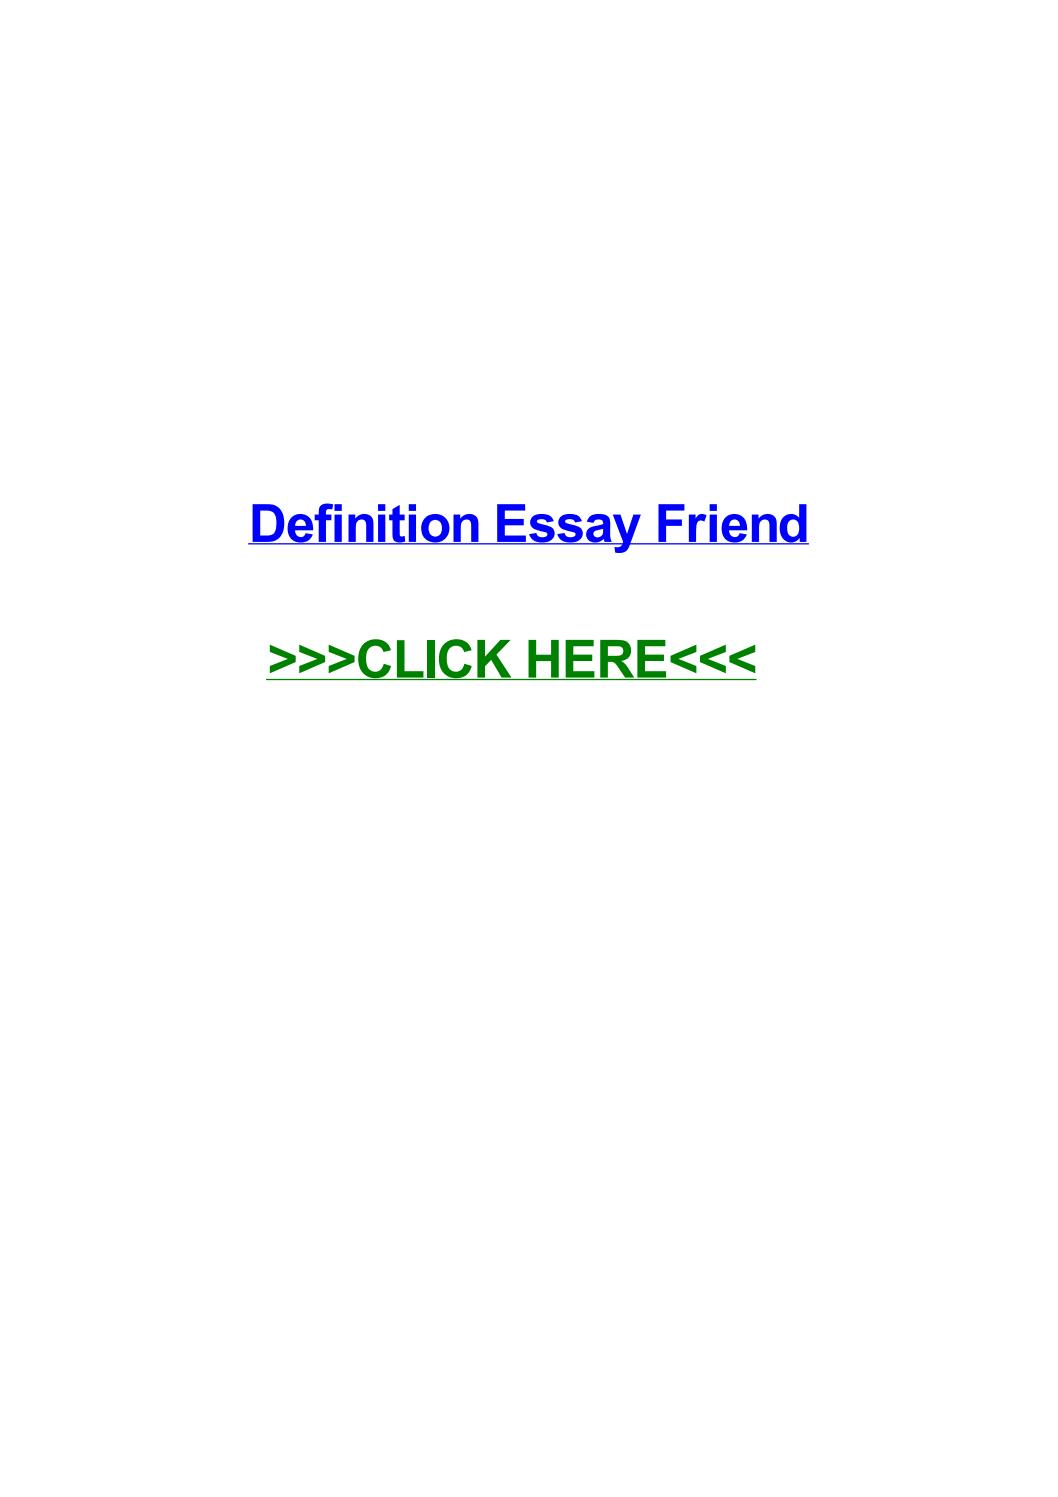 023 Friendship Definition Essay Example Page 1 Formidable Extended True Full